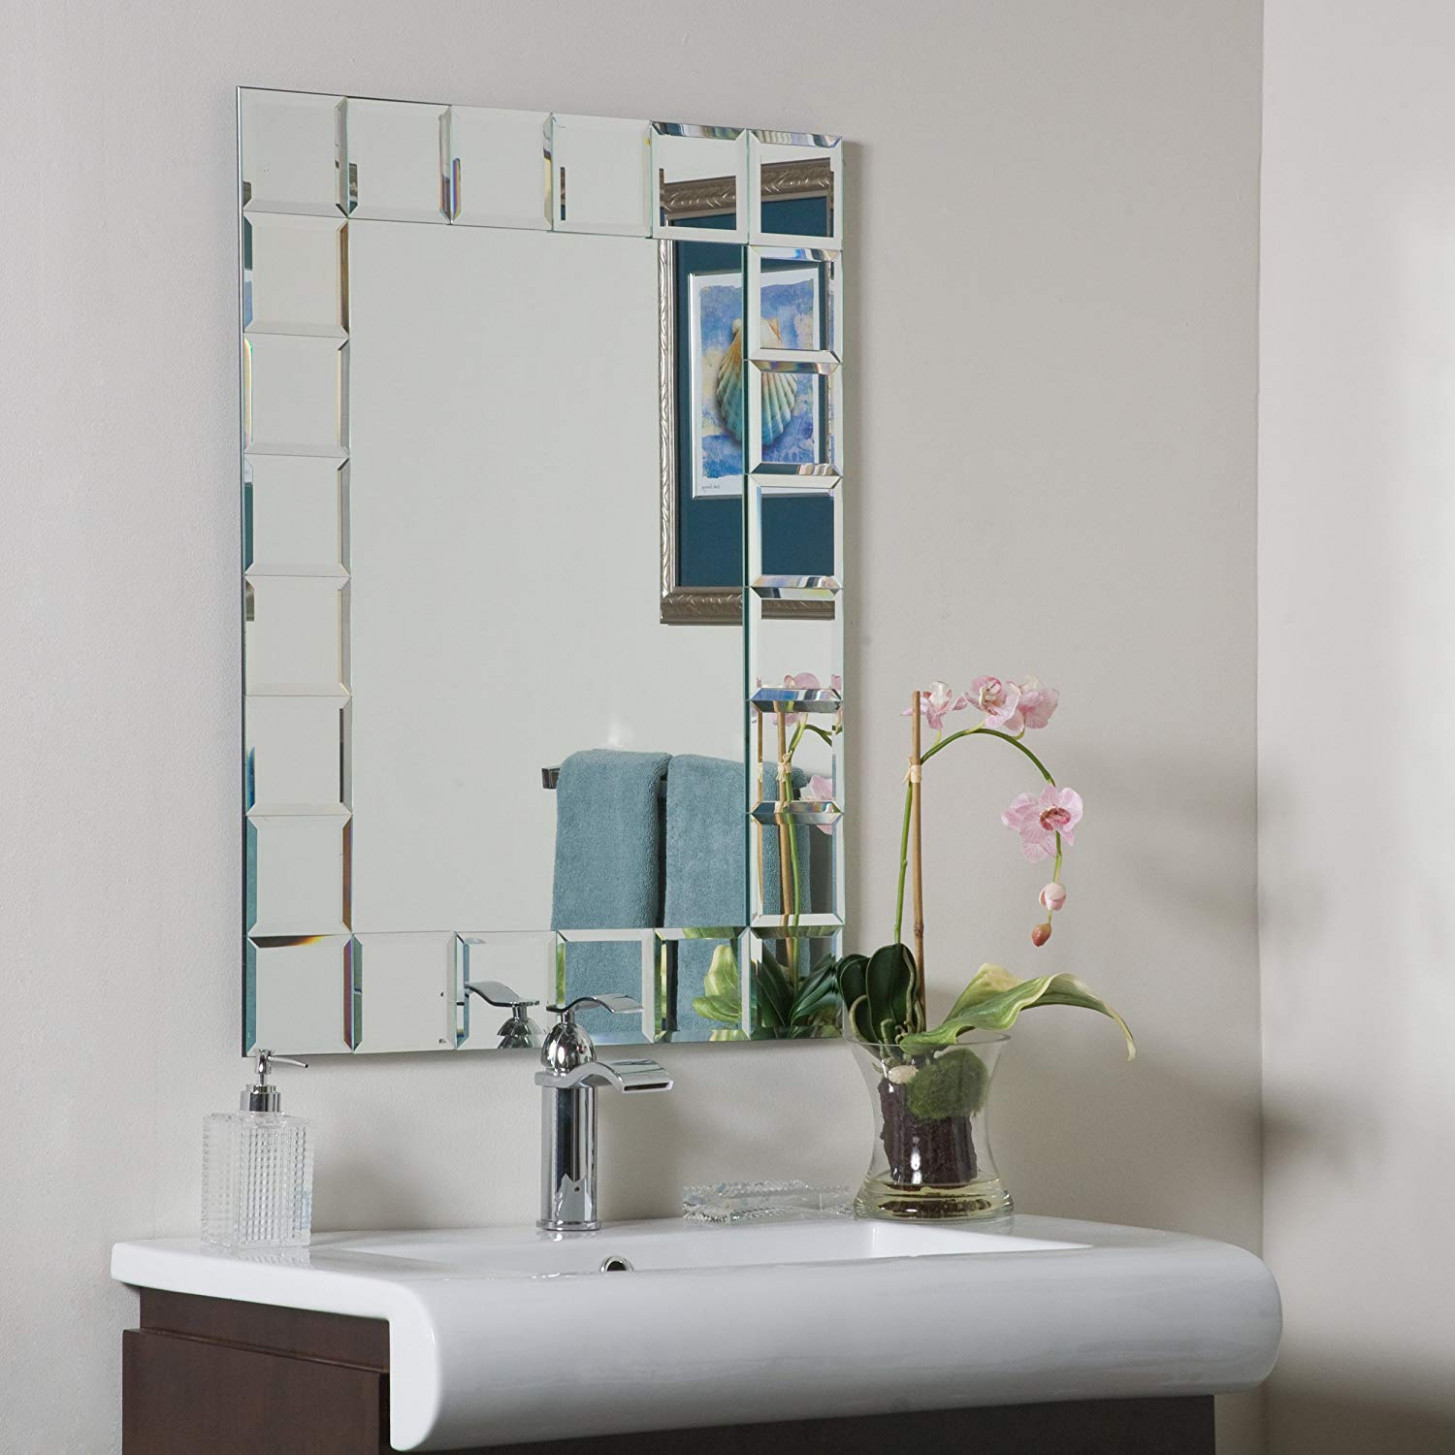 Amazon.com: Decor Wonderland Montreal Modern Bathroom Mirror: Home ...